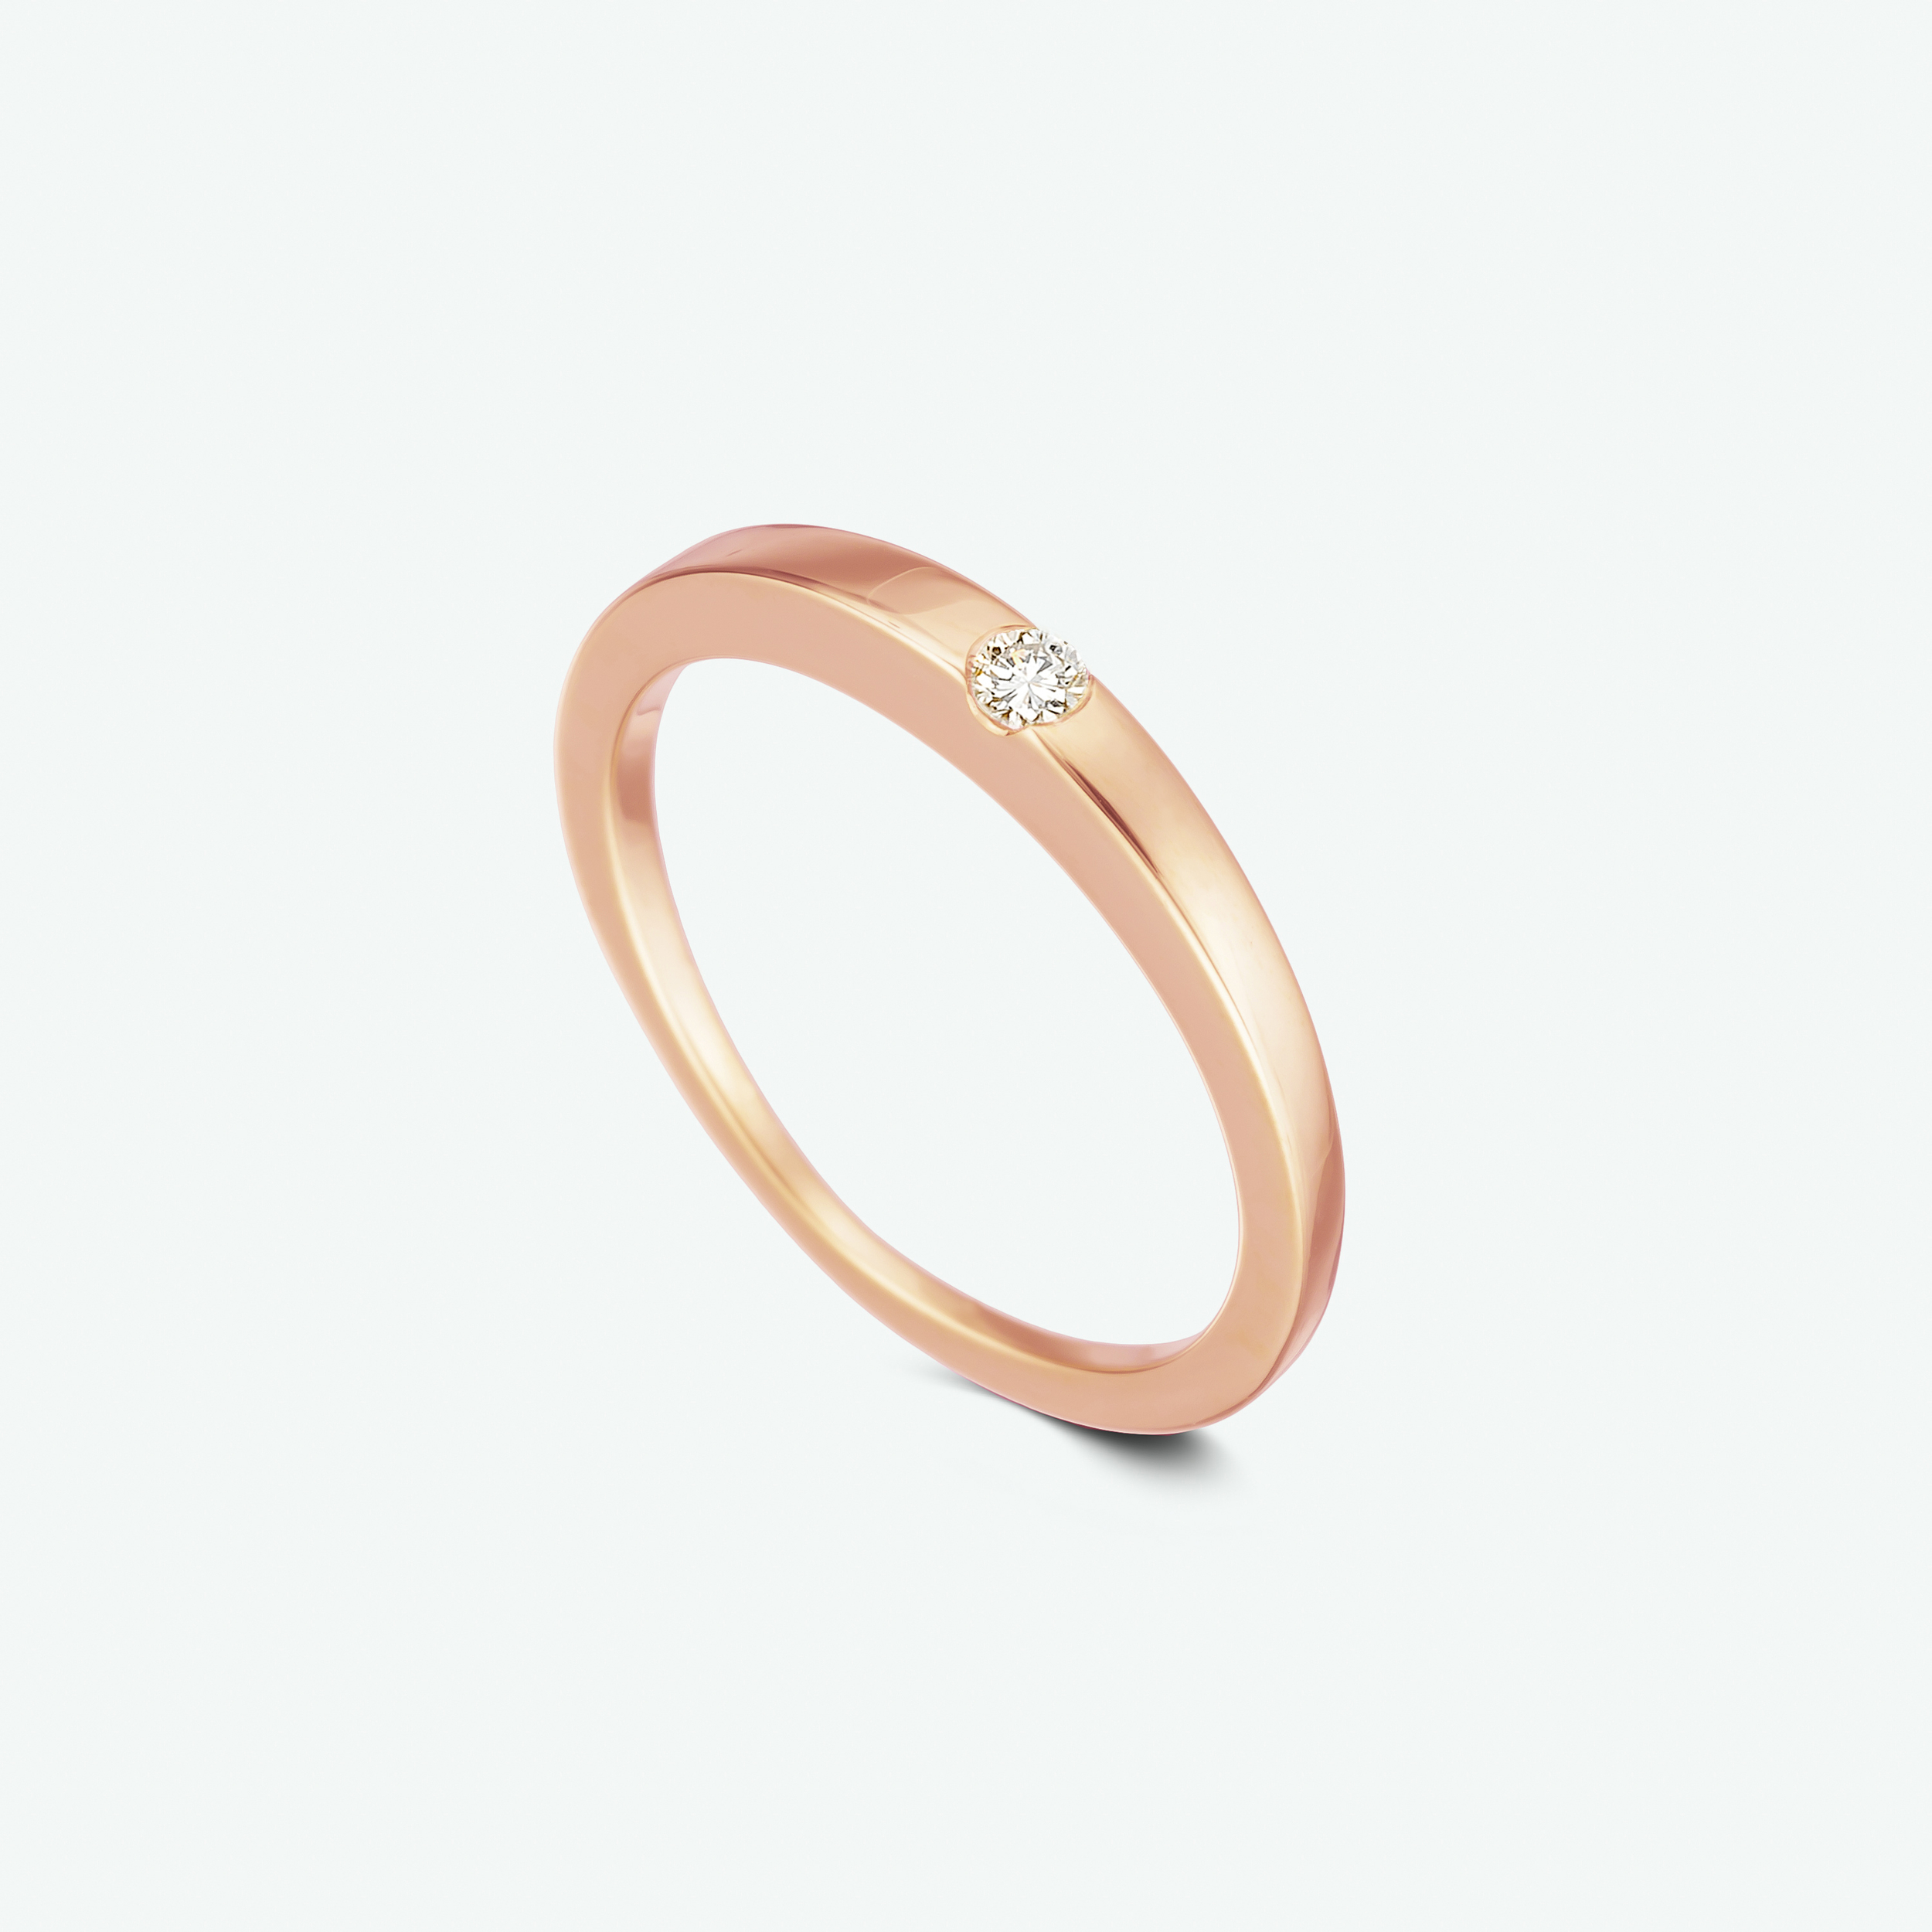 Simple yet luxurious, this elegant and romantic solitaire diamond ring is composed of 14k rose gold, with a uniquely set brilliant diamond.  D: 0.05 ct.